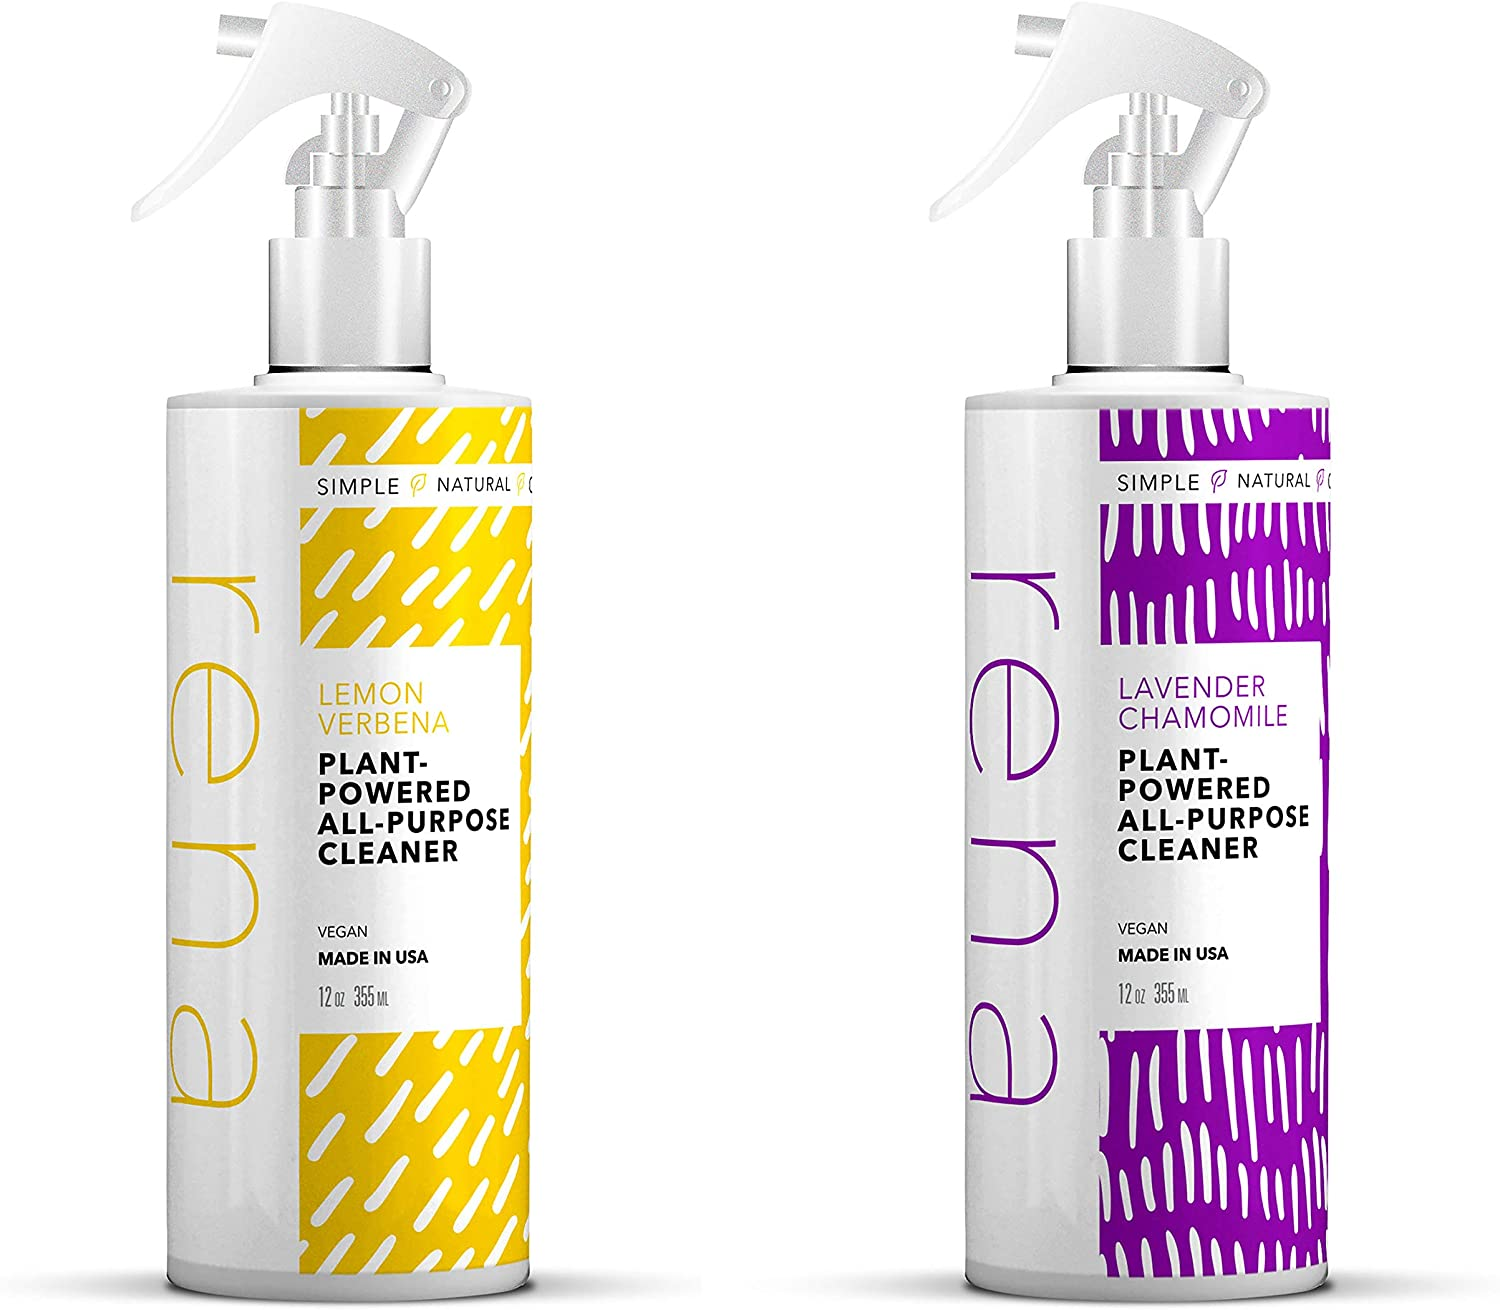 Rena Plant-Powered All-Purpose Cleaner Pack of 2 – Lavender Chamomile & Lemon Verbena – Essential Oils, Eco Friendly Ingredients, Zero Toxic Chemicals – 12 Oz.